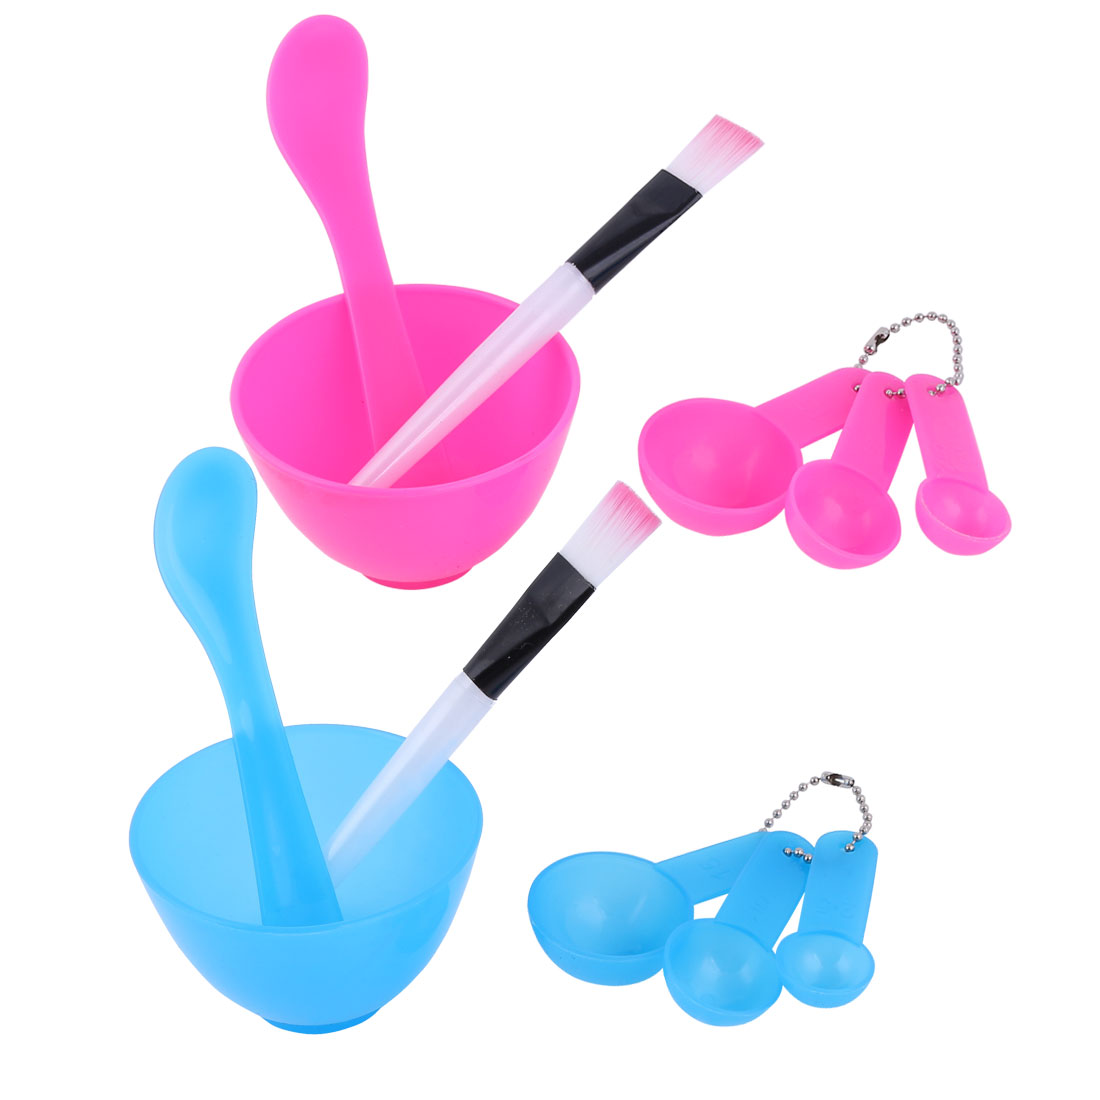 Lady Plastic Facial Mask Bowl Spoon Stick Brush Tool Kit Fuchsia Blue 2 Sets